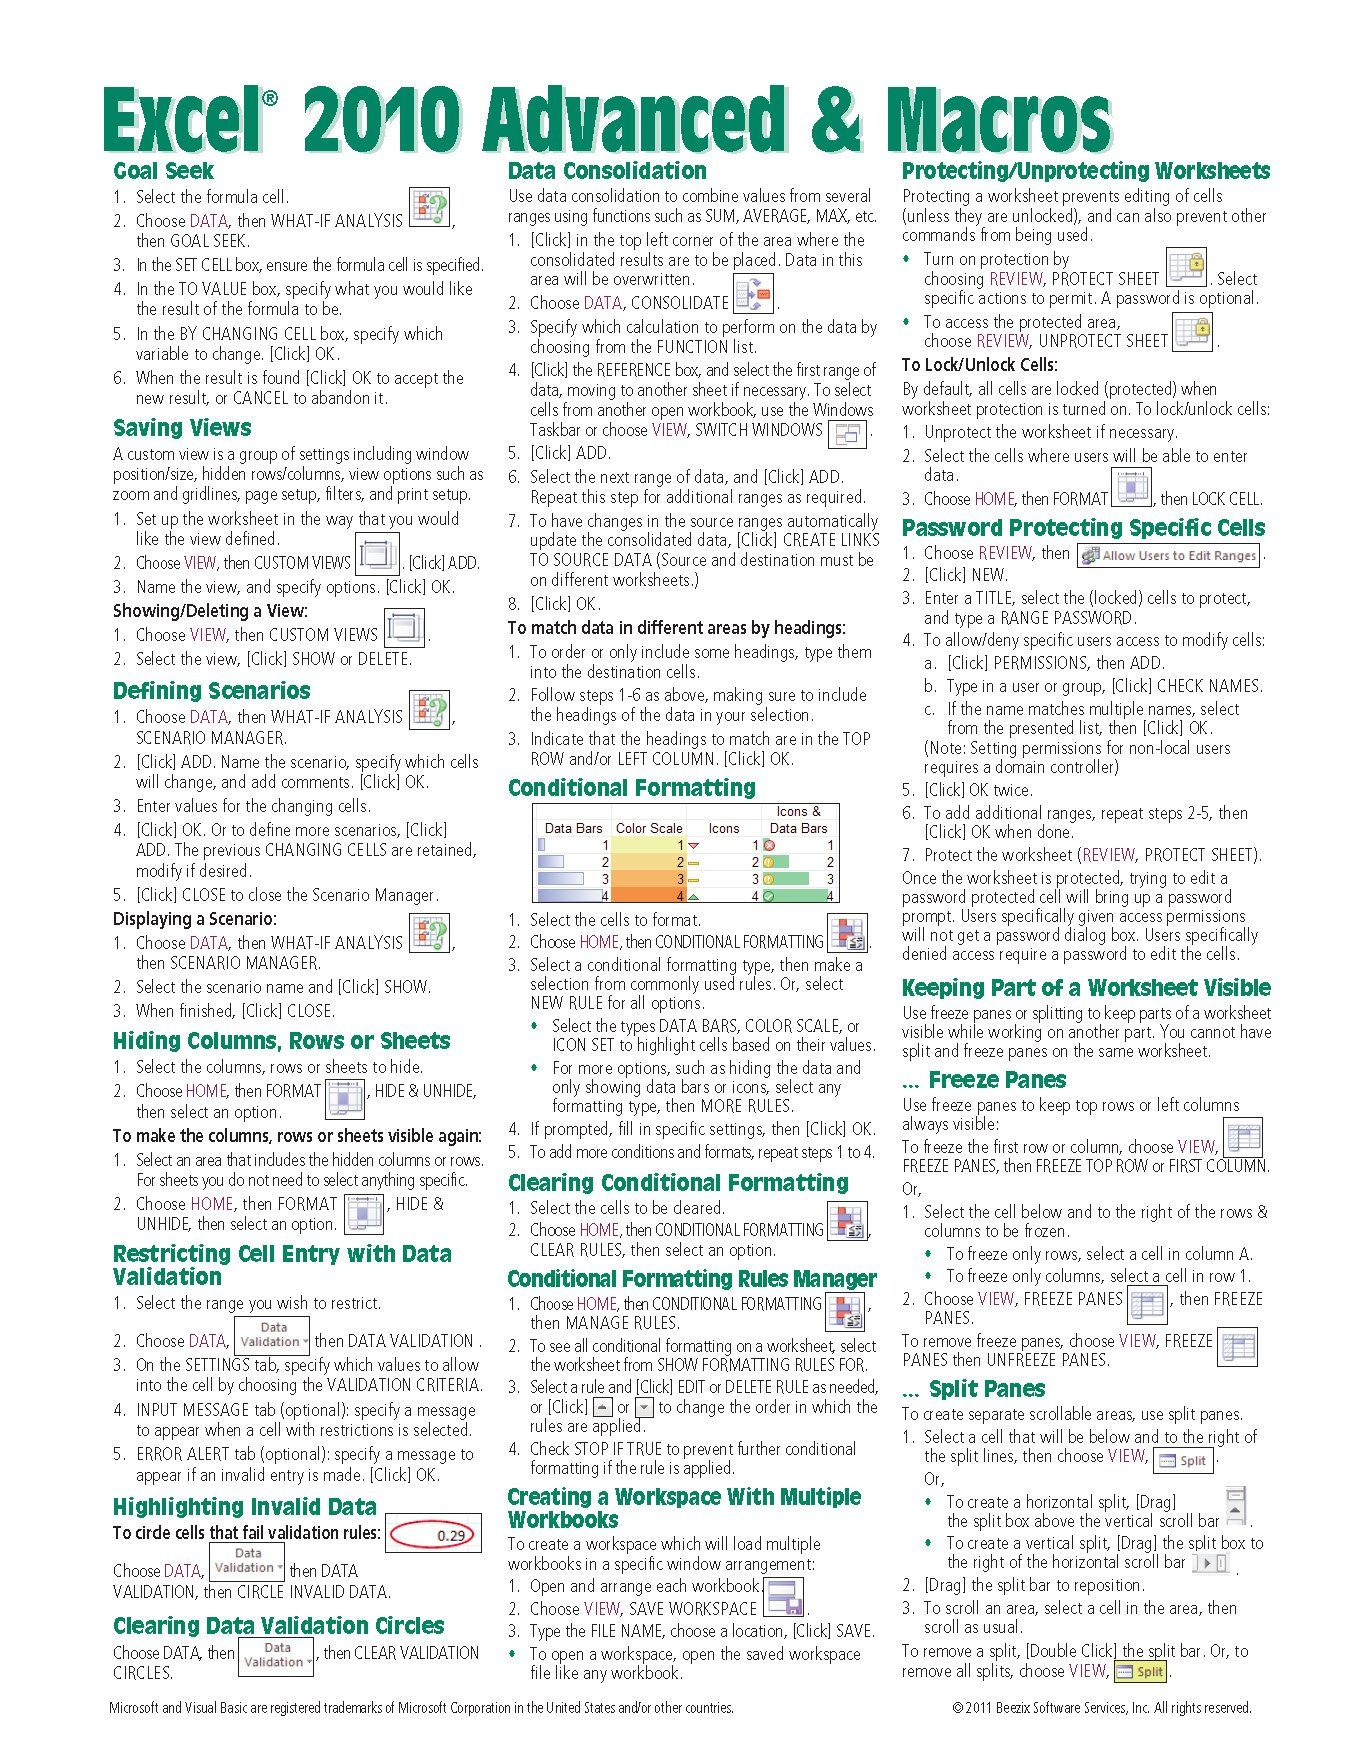 Microsoft Excel Advanced Amp Macros Quick Reference